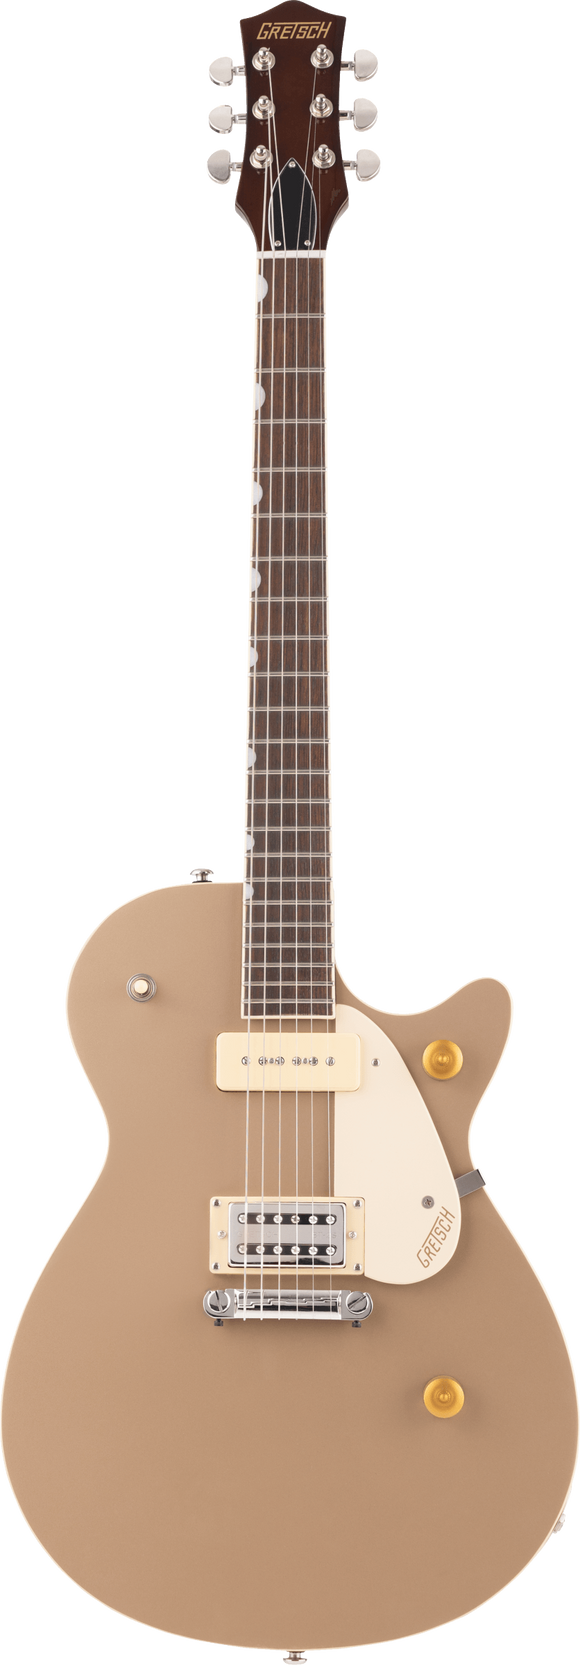 Gretsch G2215-P90 Streamliner Junior Jet Club Sahara Metallic